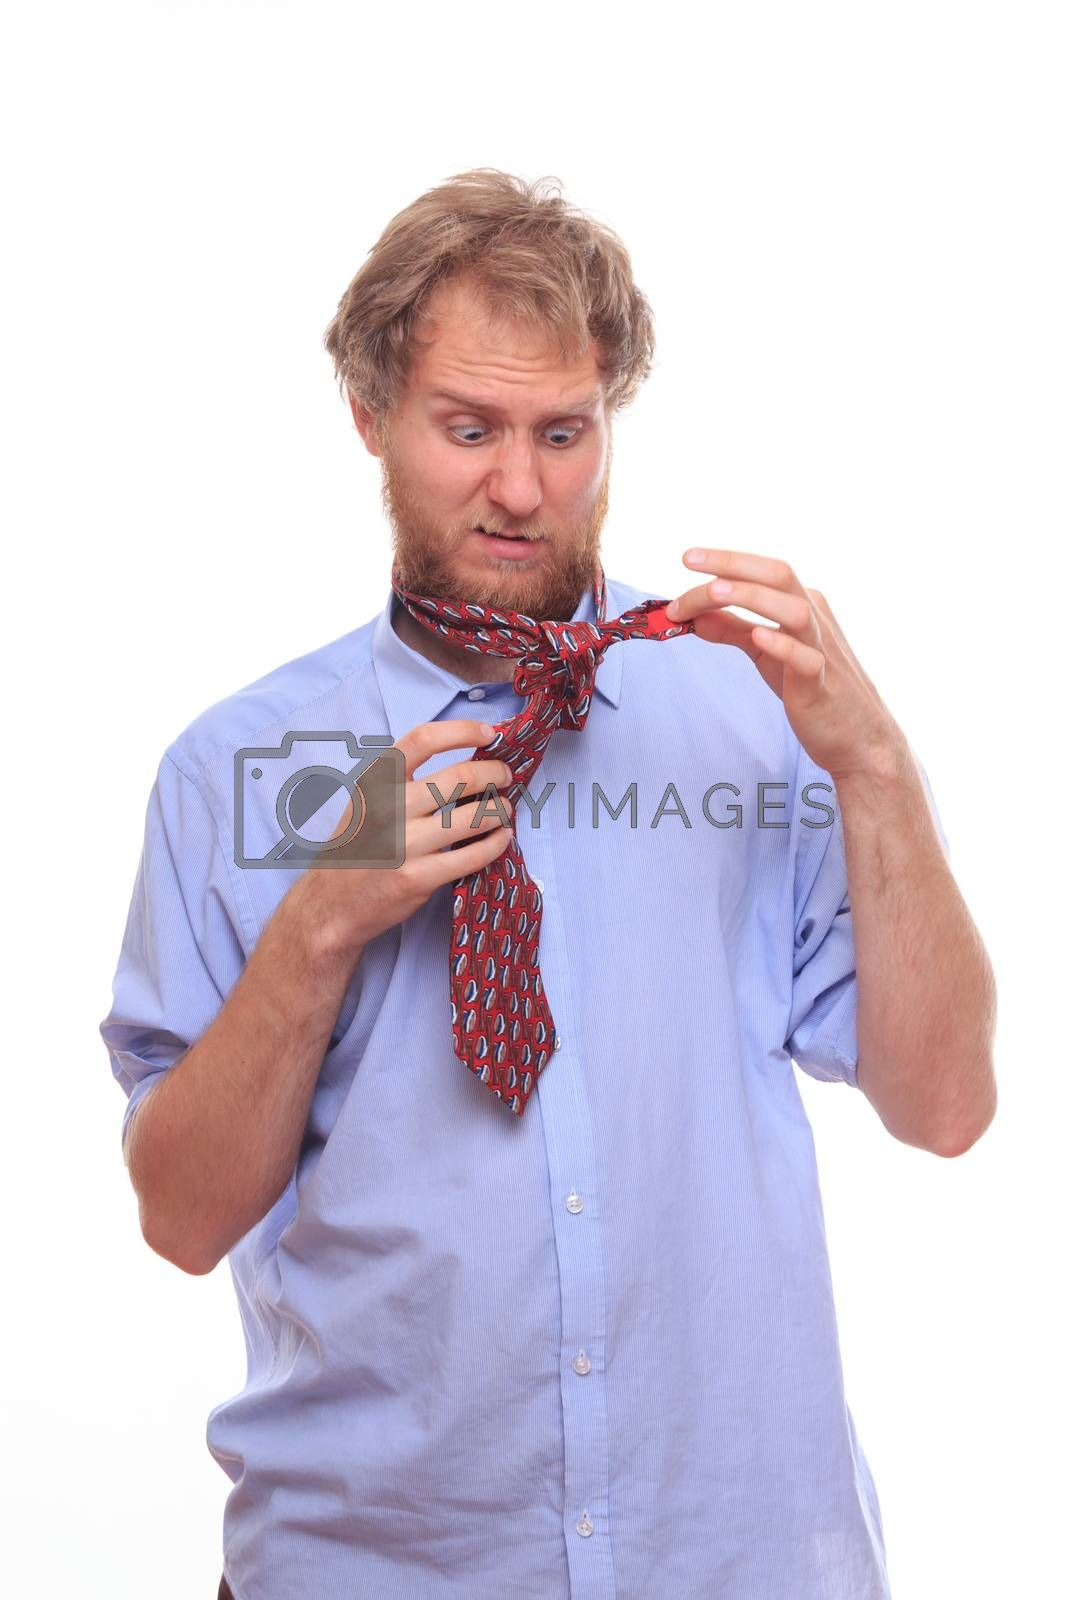 Man first time at morning tie a tie on his neck  by MichalLudwiczak